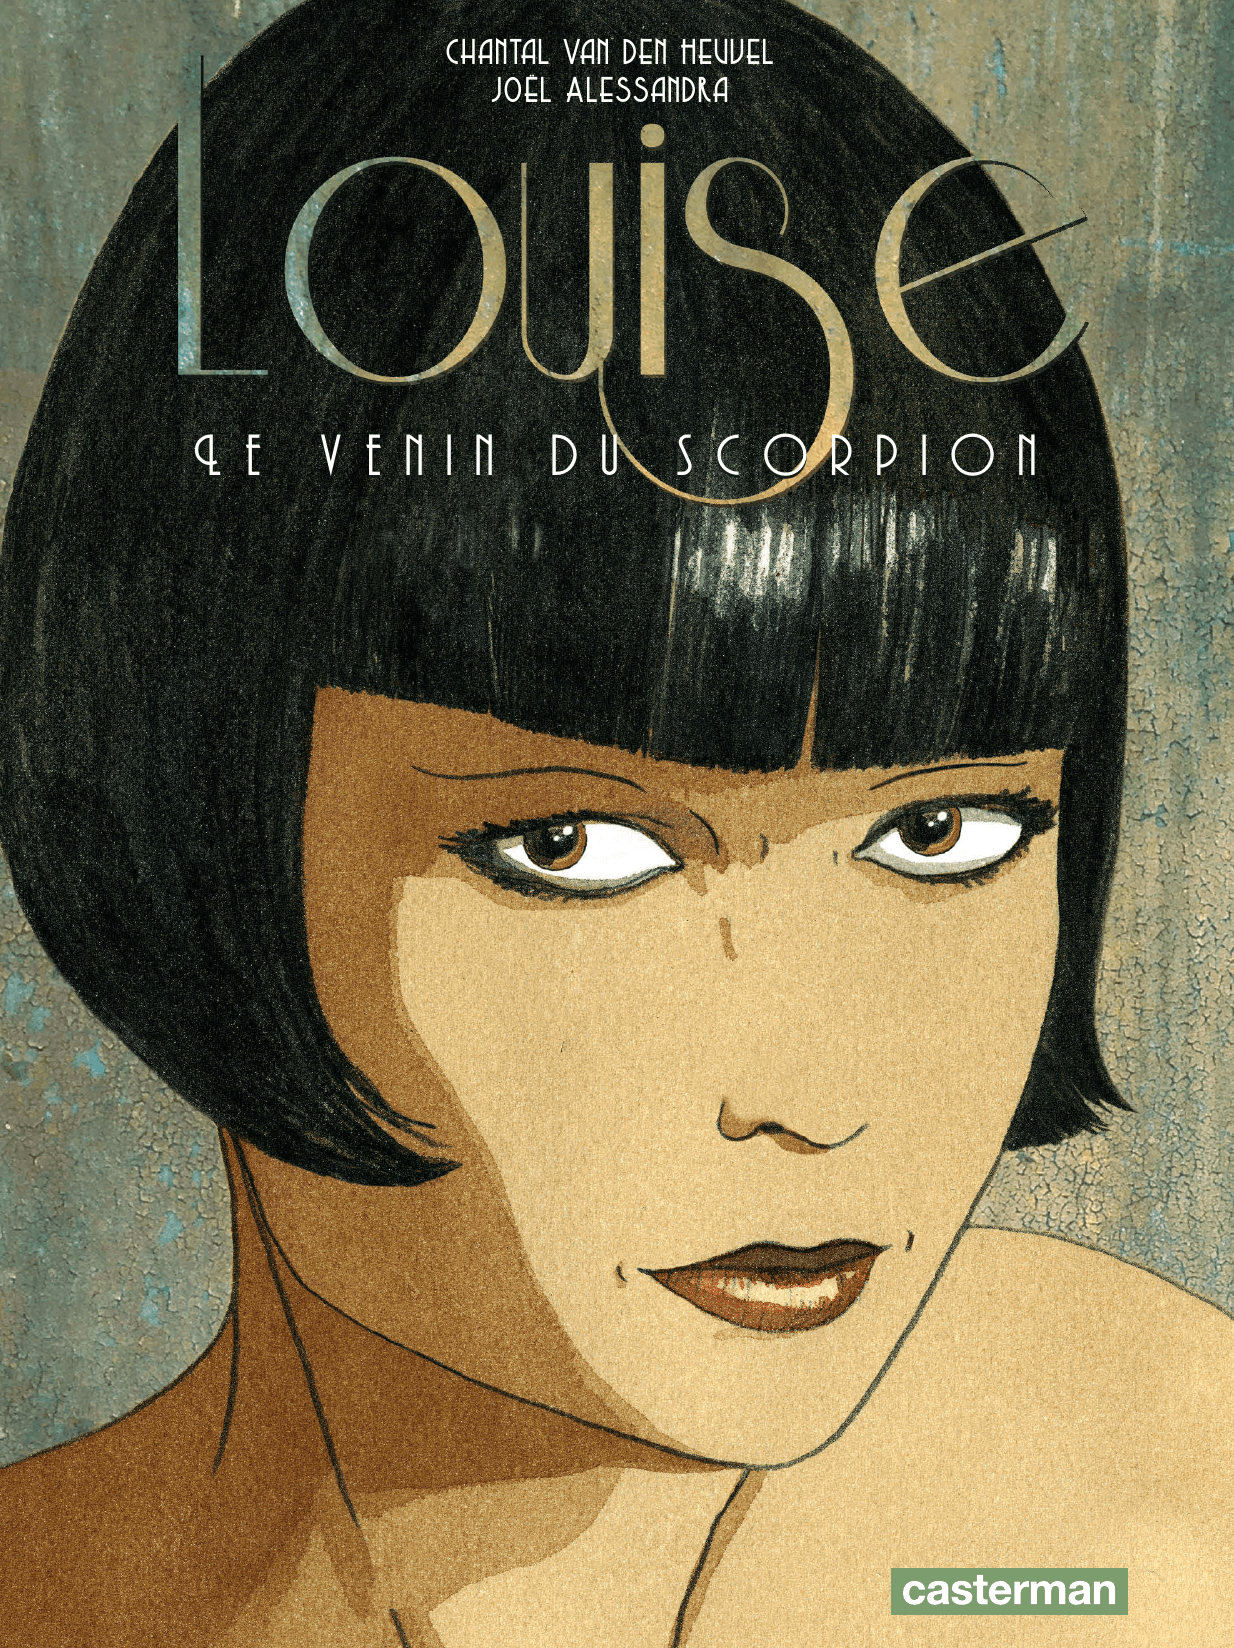 Louise, le venin du scorpion